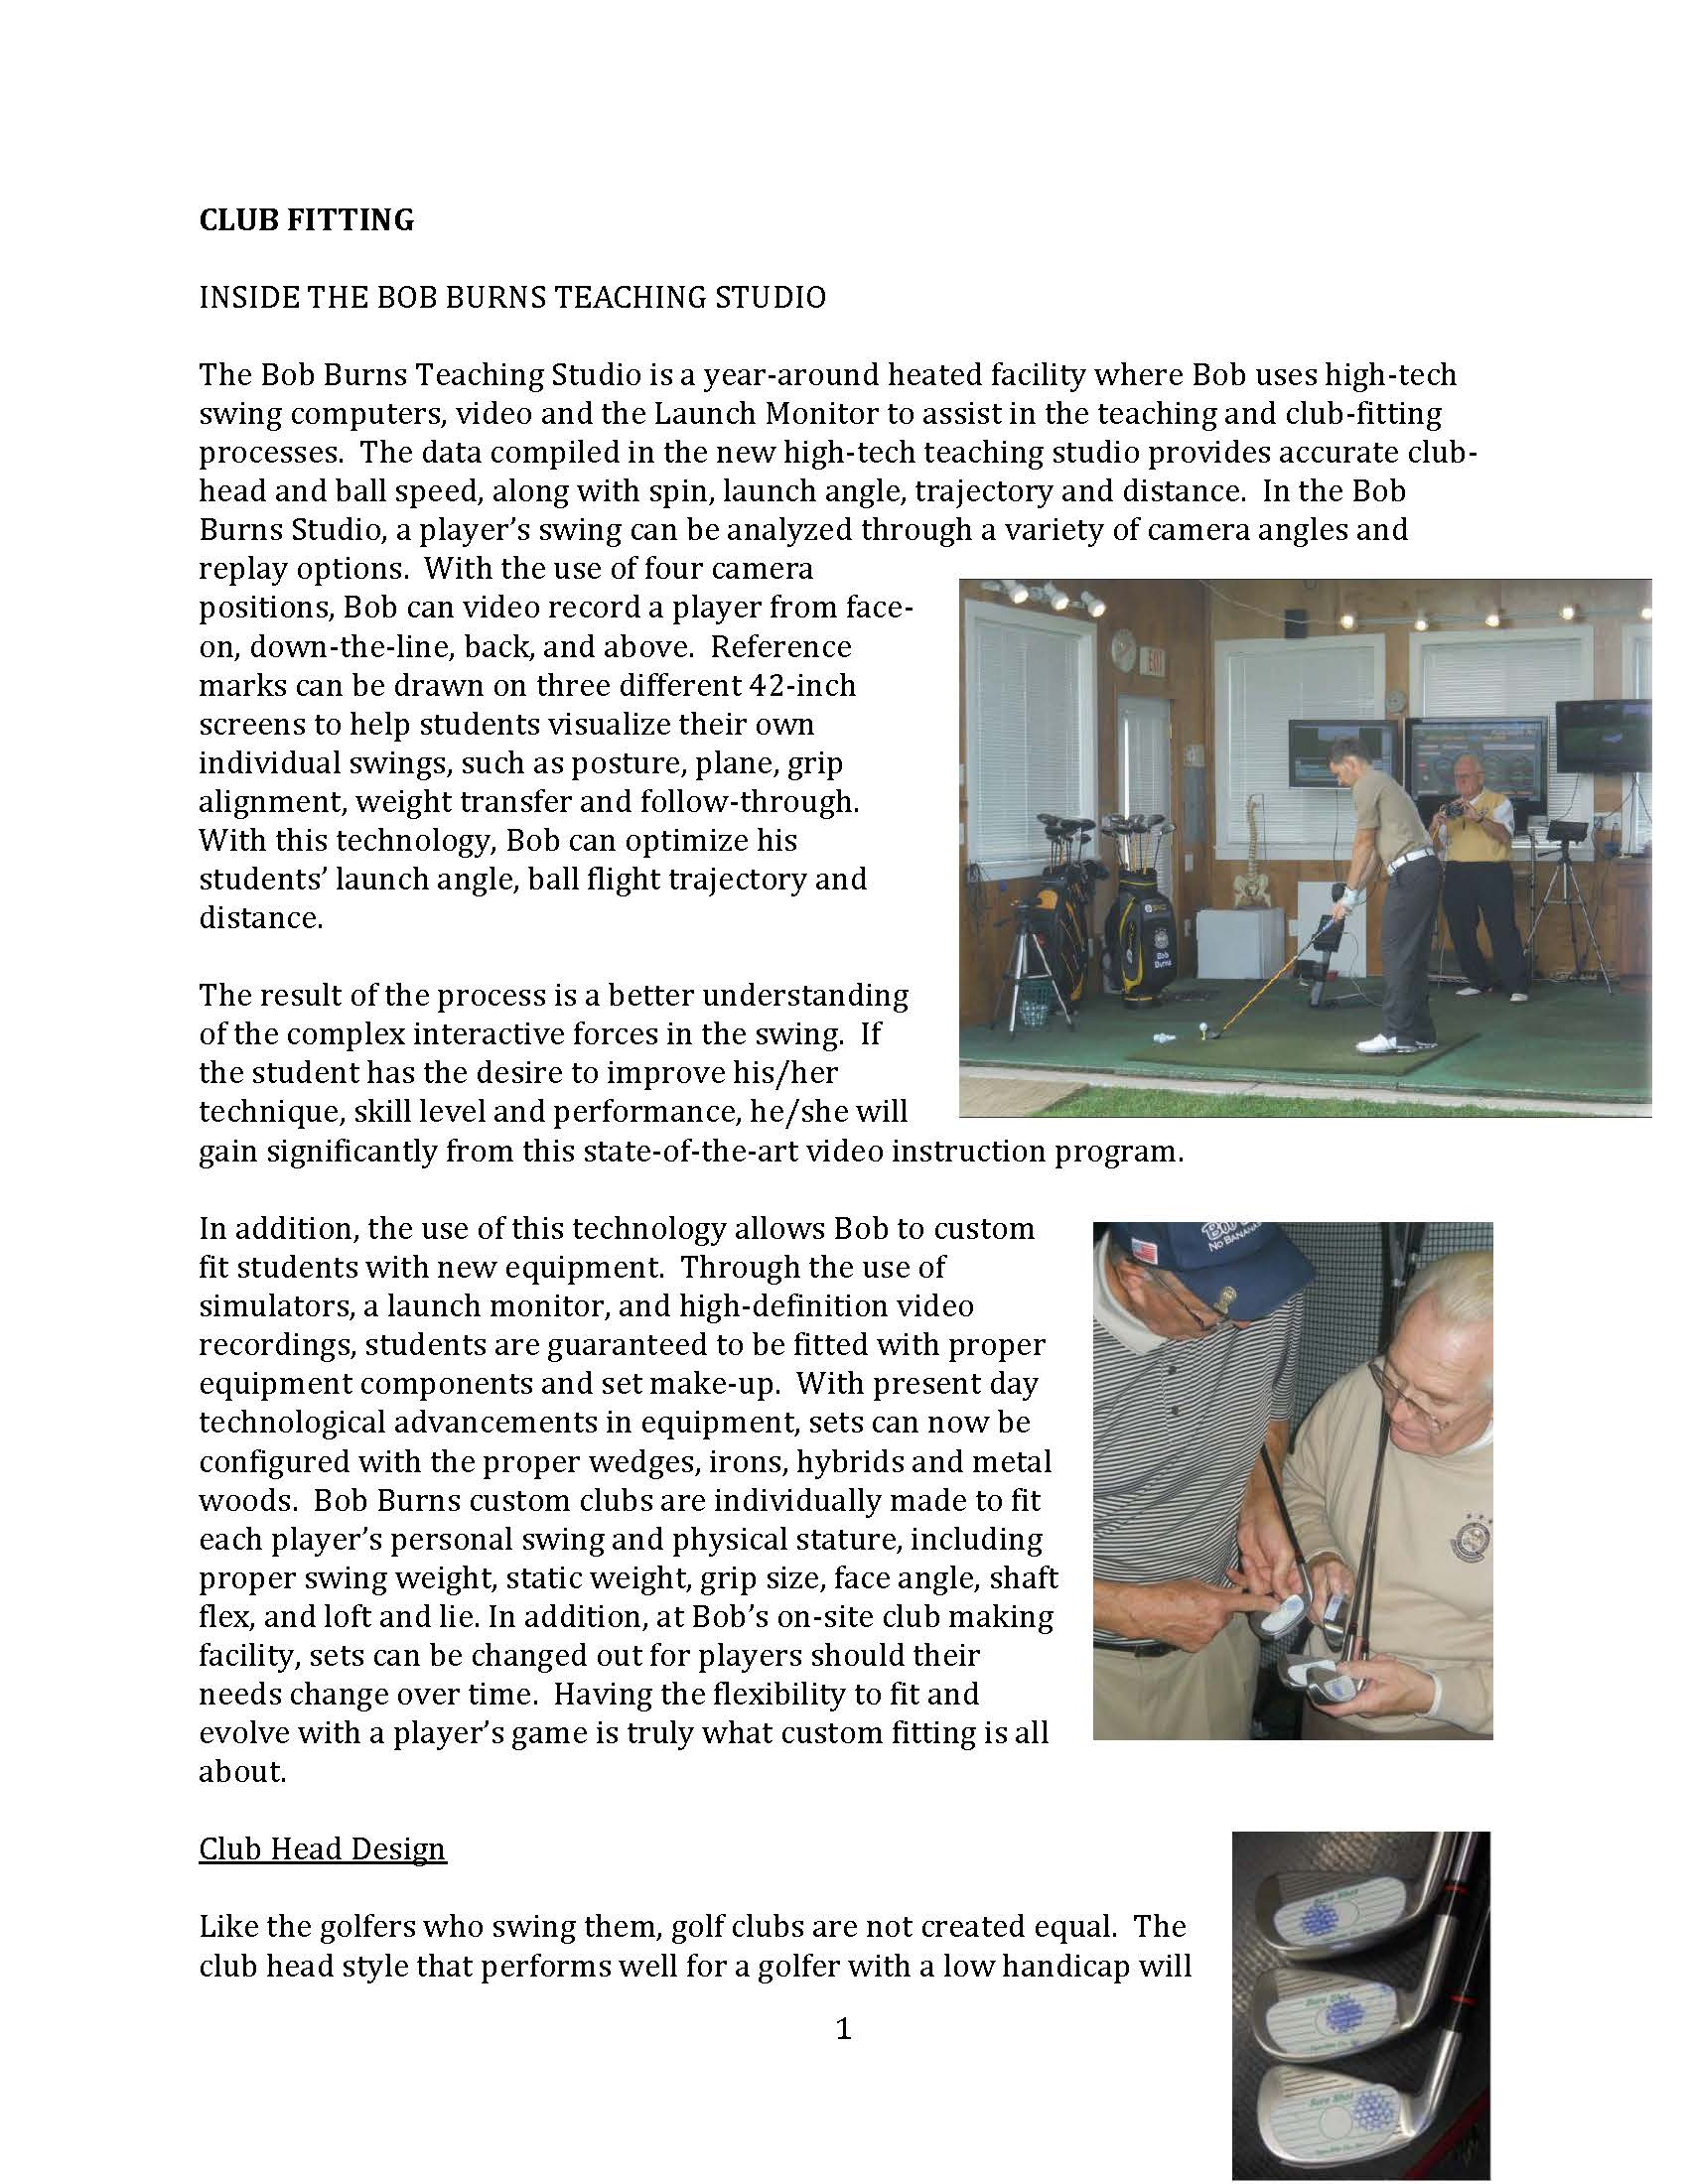 Club Fitting_Page_2